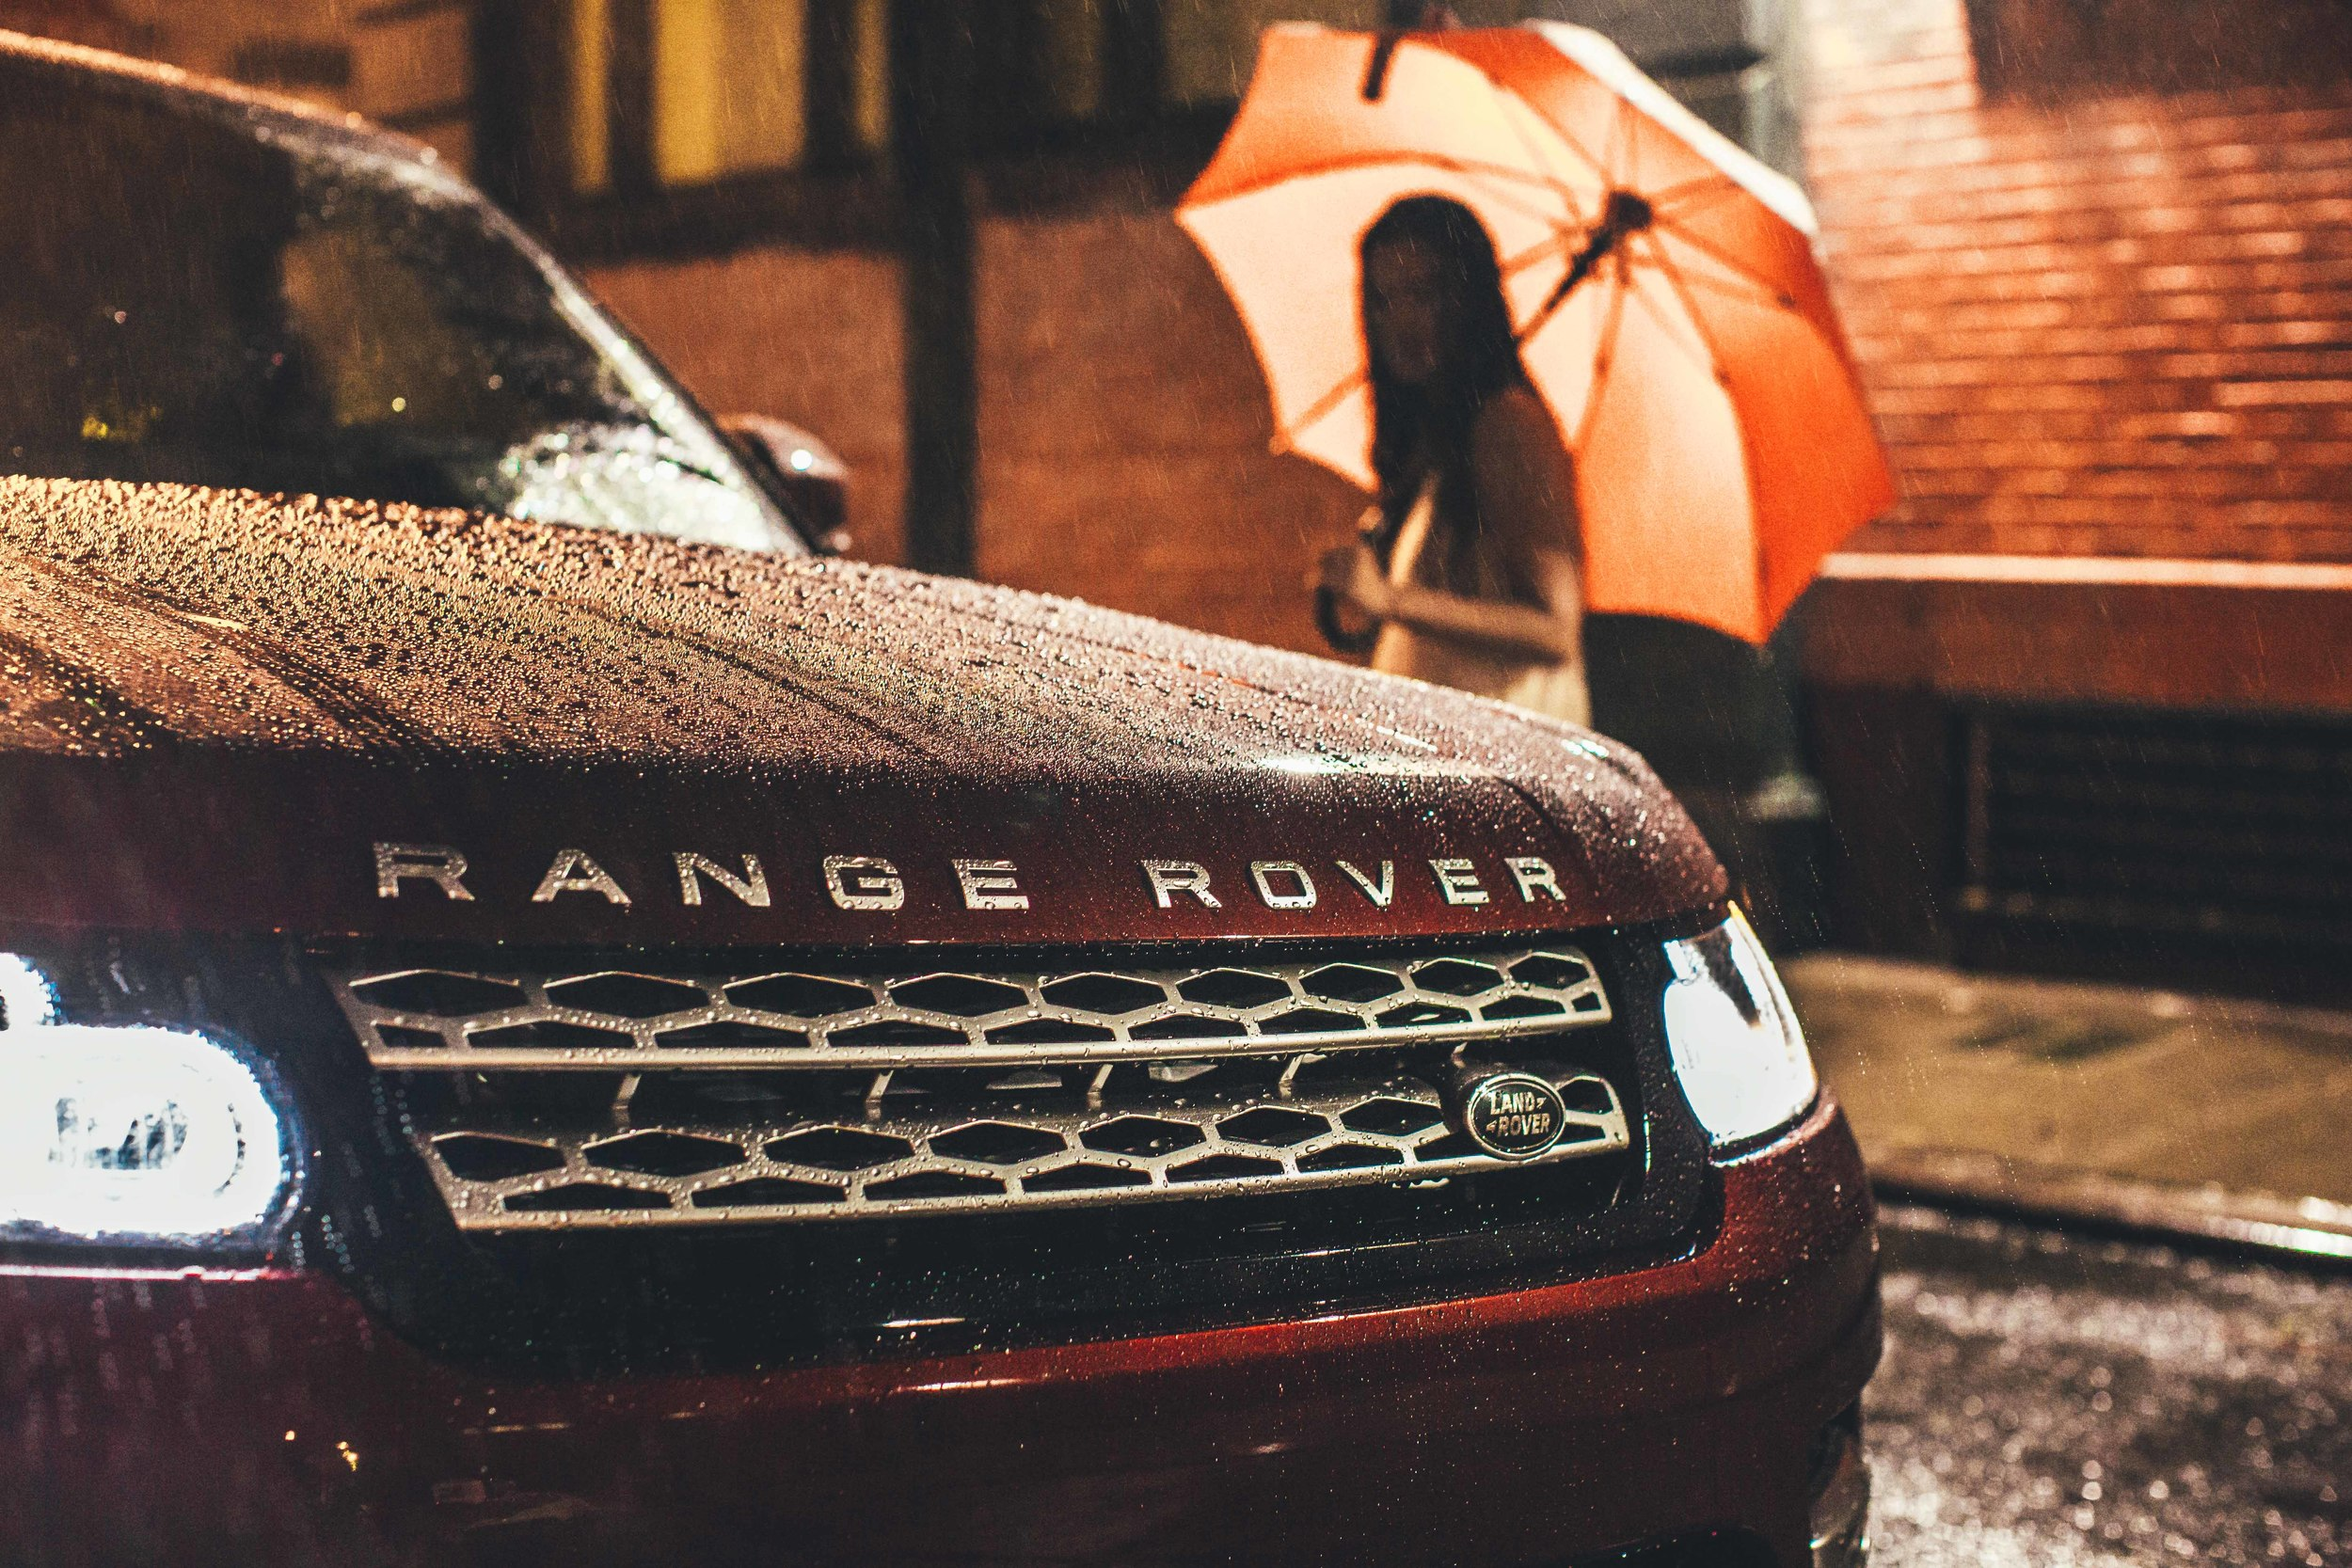 Commissioned by Land Rover for visual direction and content creation for the Range Rover Sport car model.